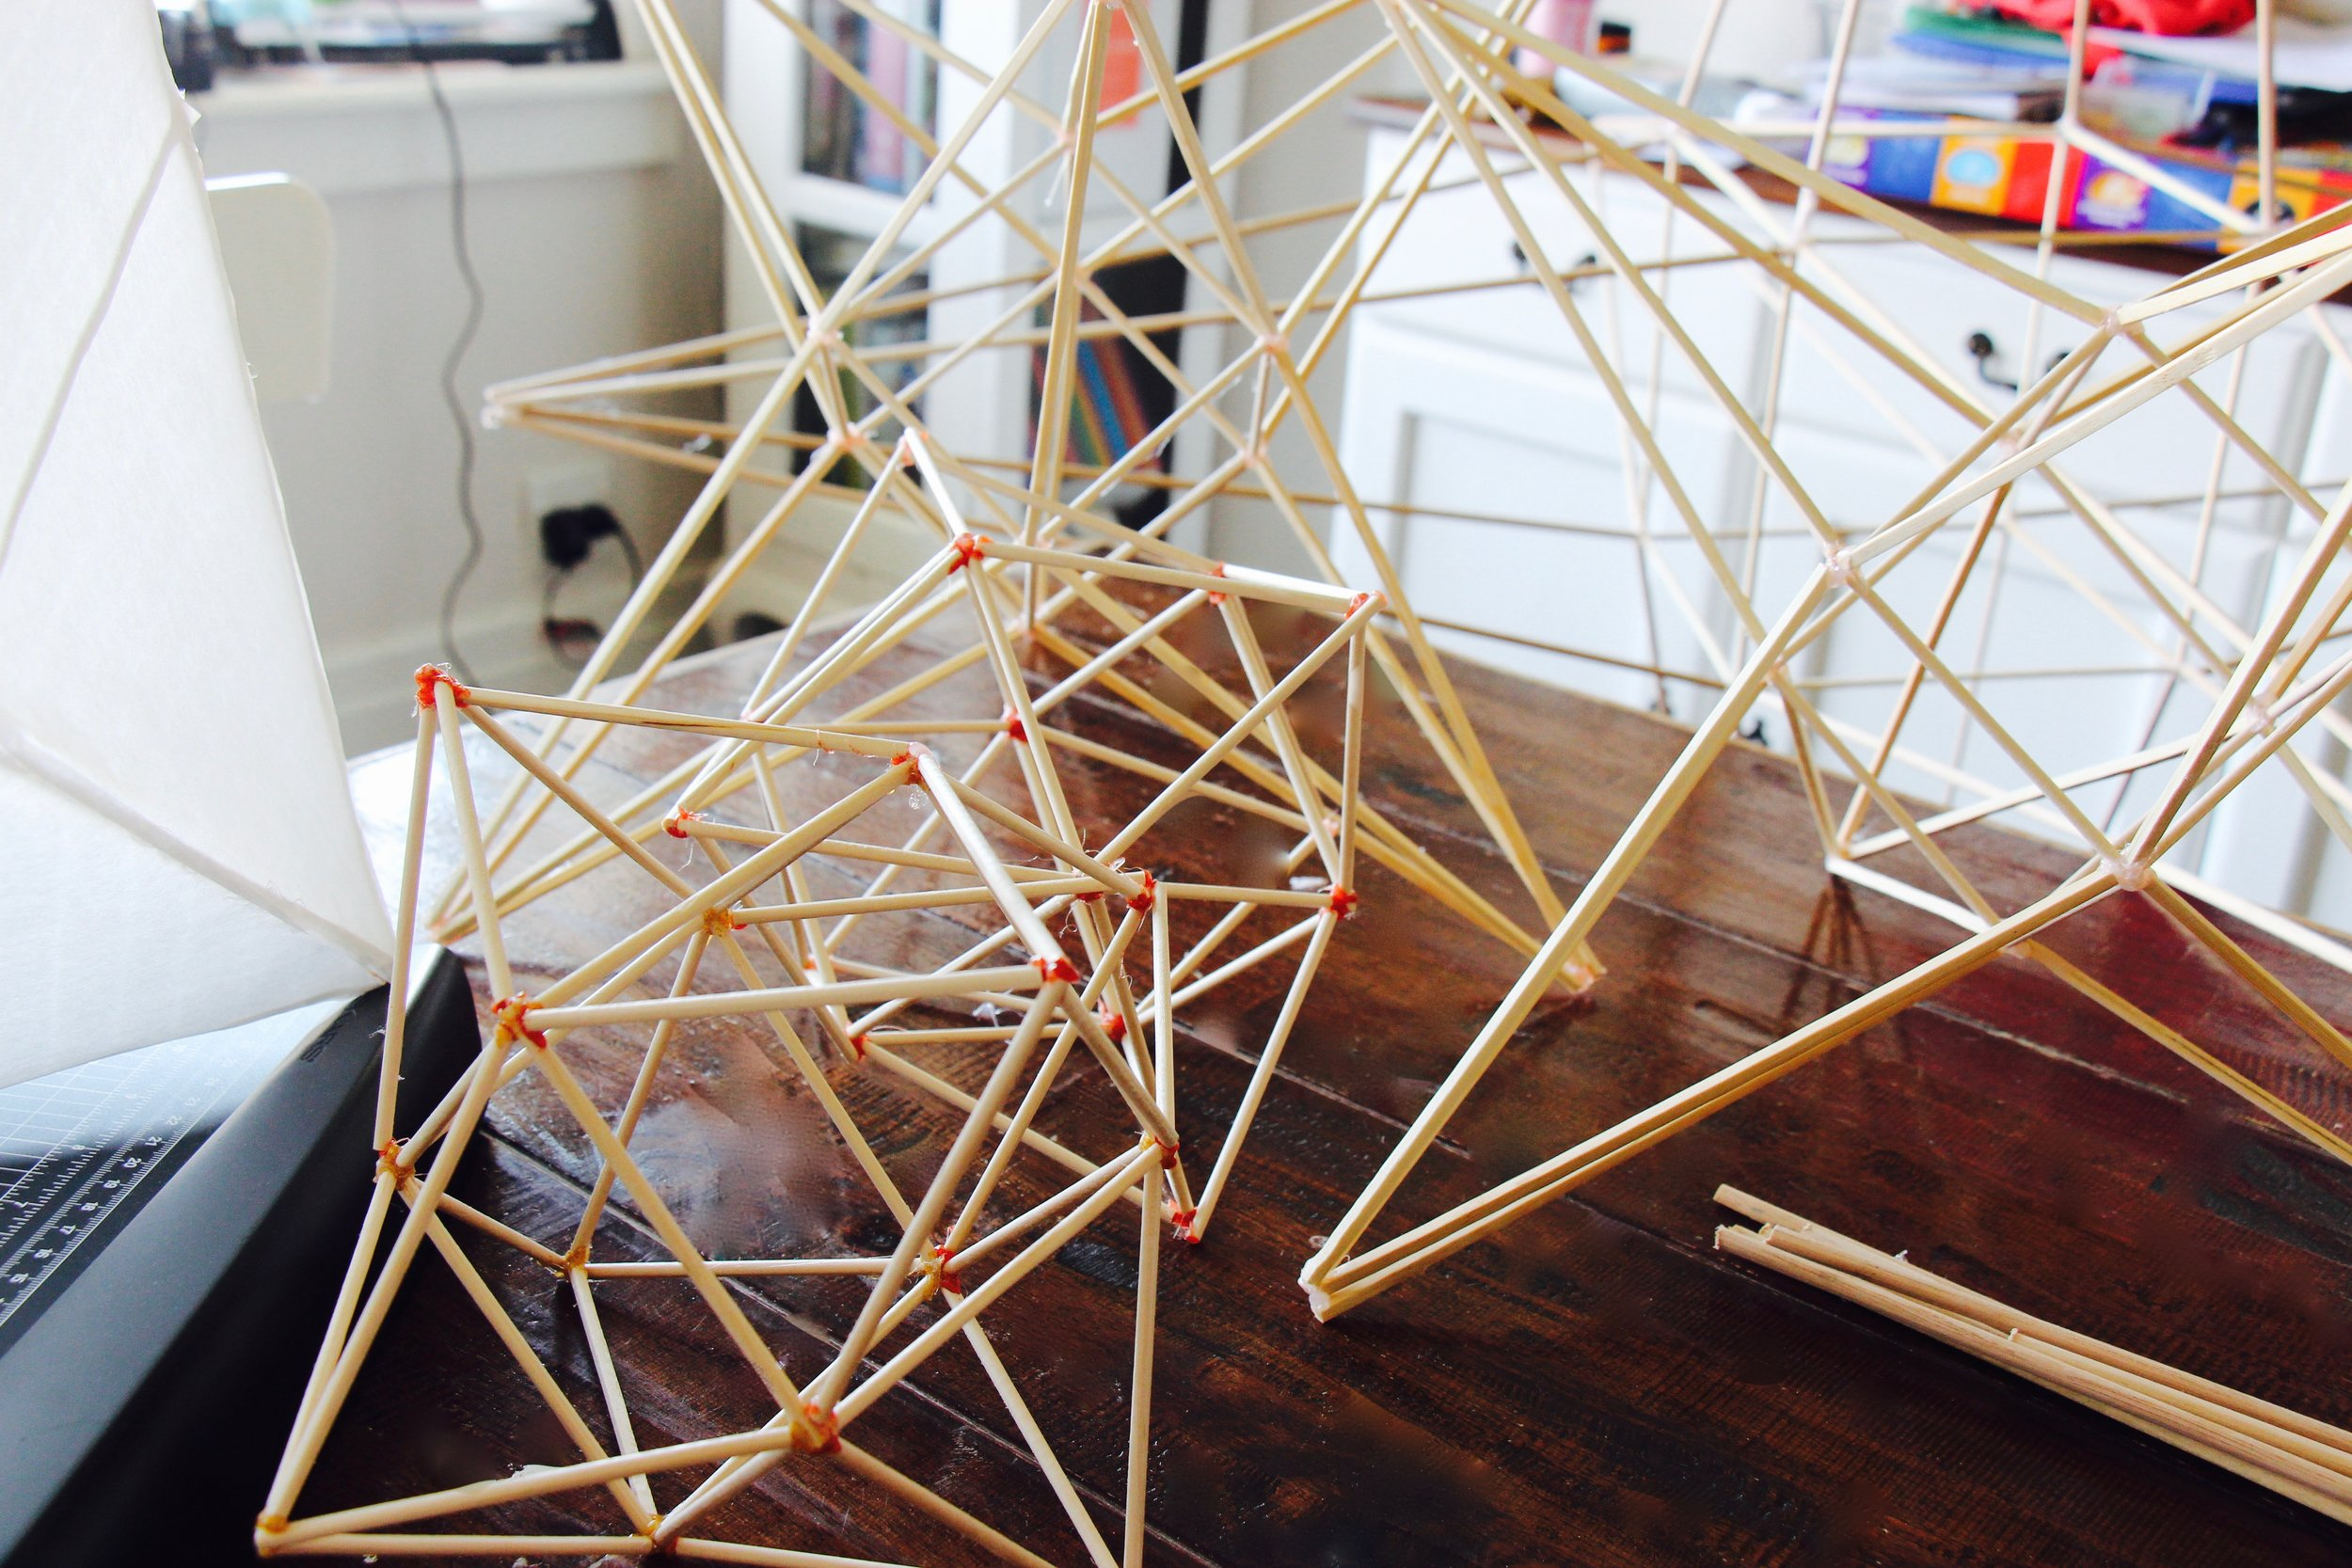 geometric magic in the beautiful beginnings ... the bamboo star structures pre-addition of the sumi-e paper.